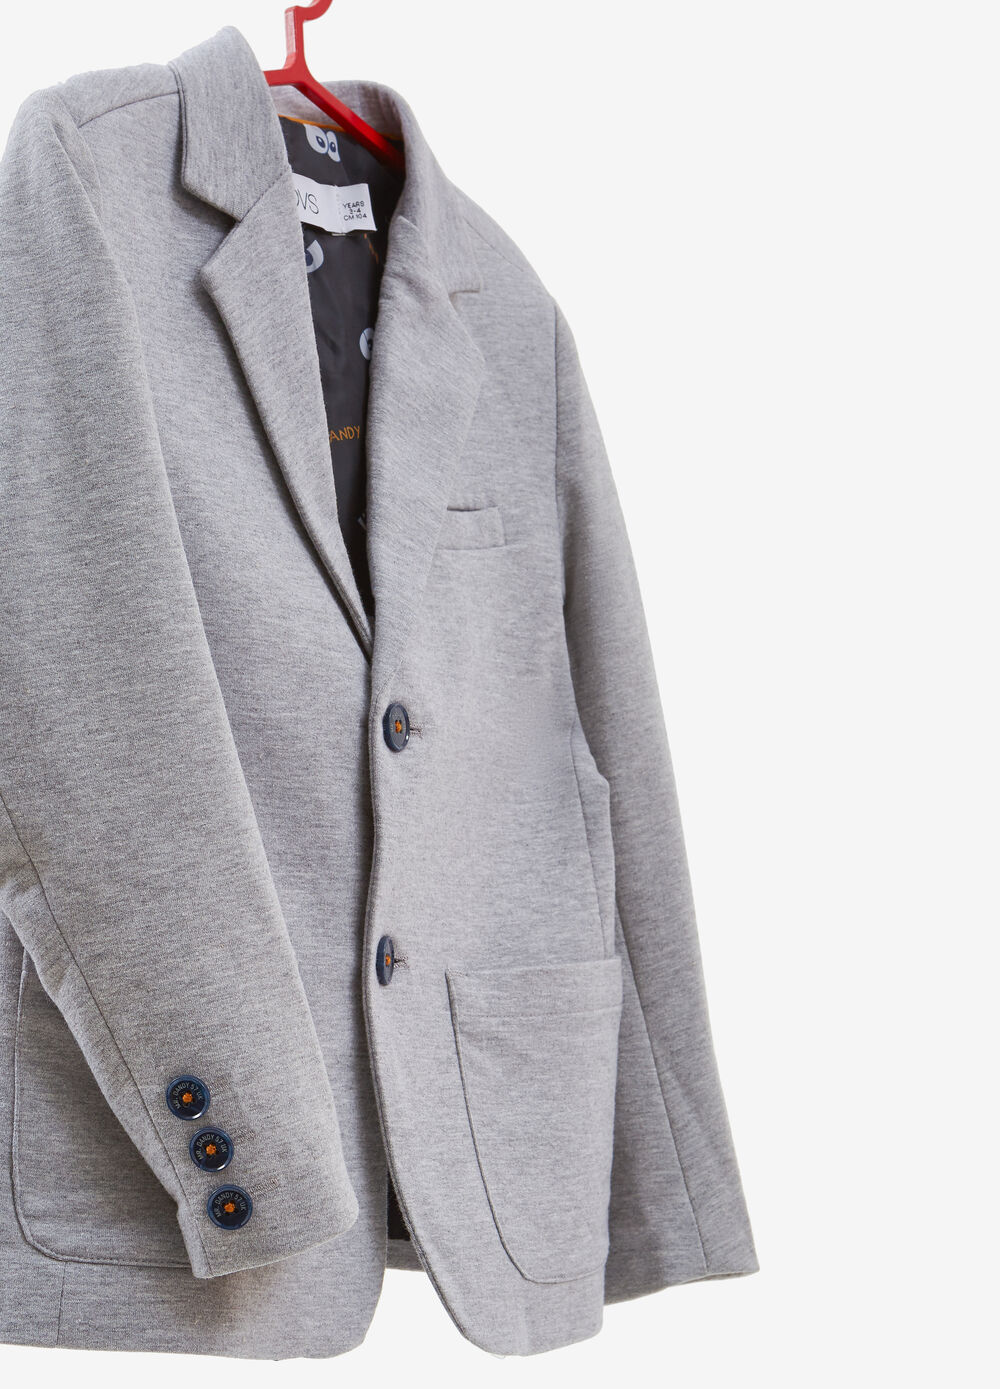 Cotton blend jacket with two buttons